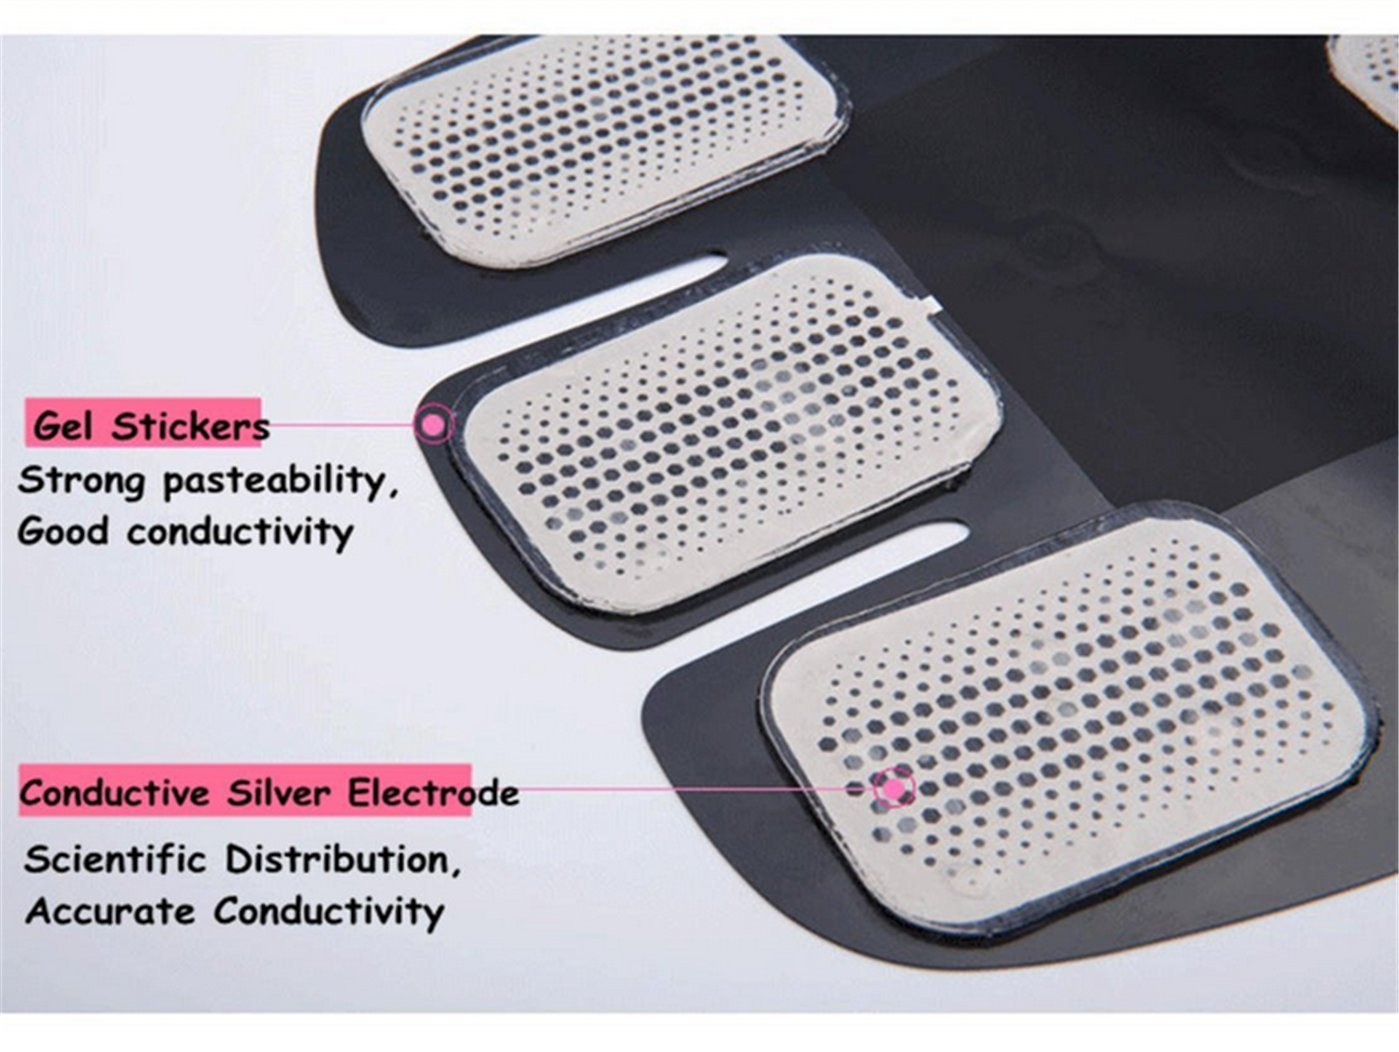 BOZHOO EMS Trainning,Muscle Stimulator Electronic Muscle Stimulation EMS Training Device Fitness Electrostimulator Muscle Training Man//Woman Massage Belt Abdomen Arms Legs and Body for All Sizes